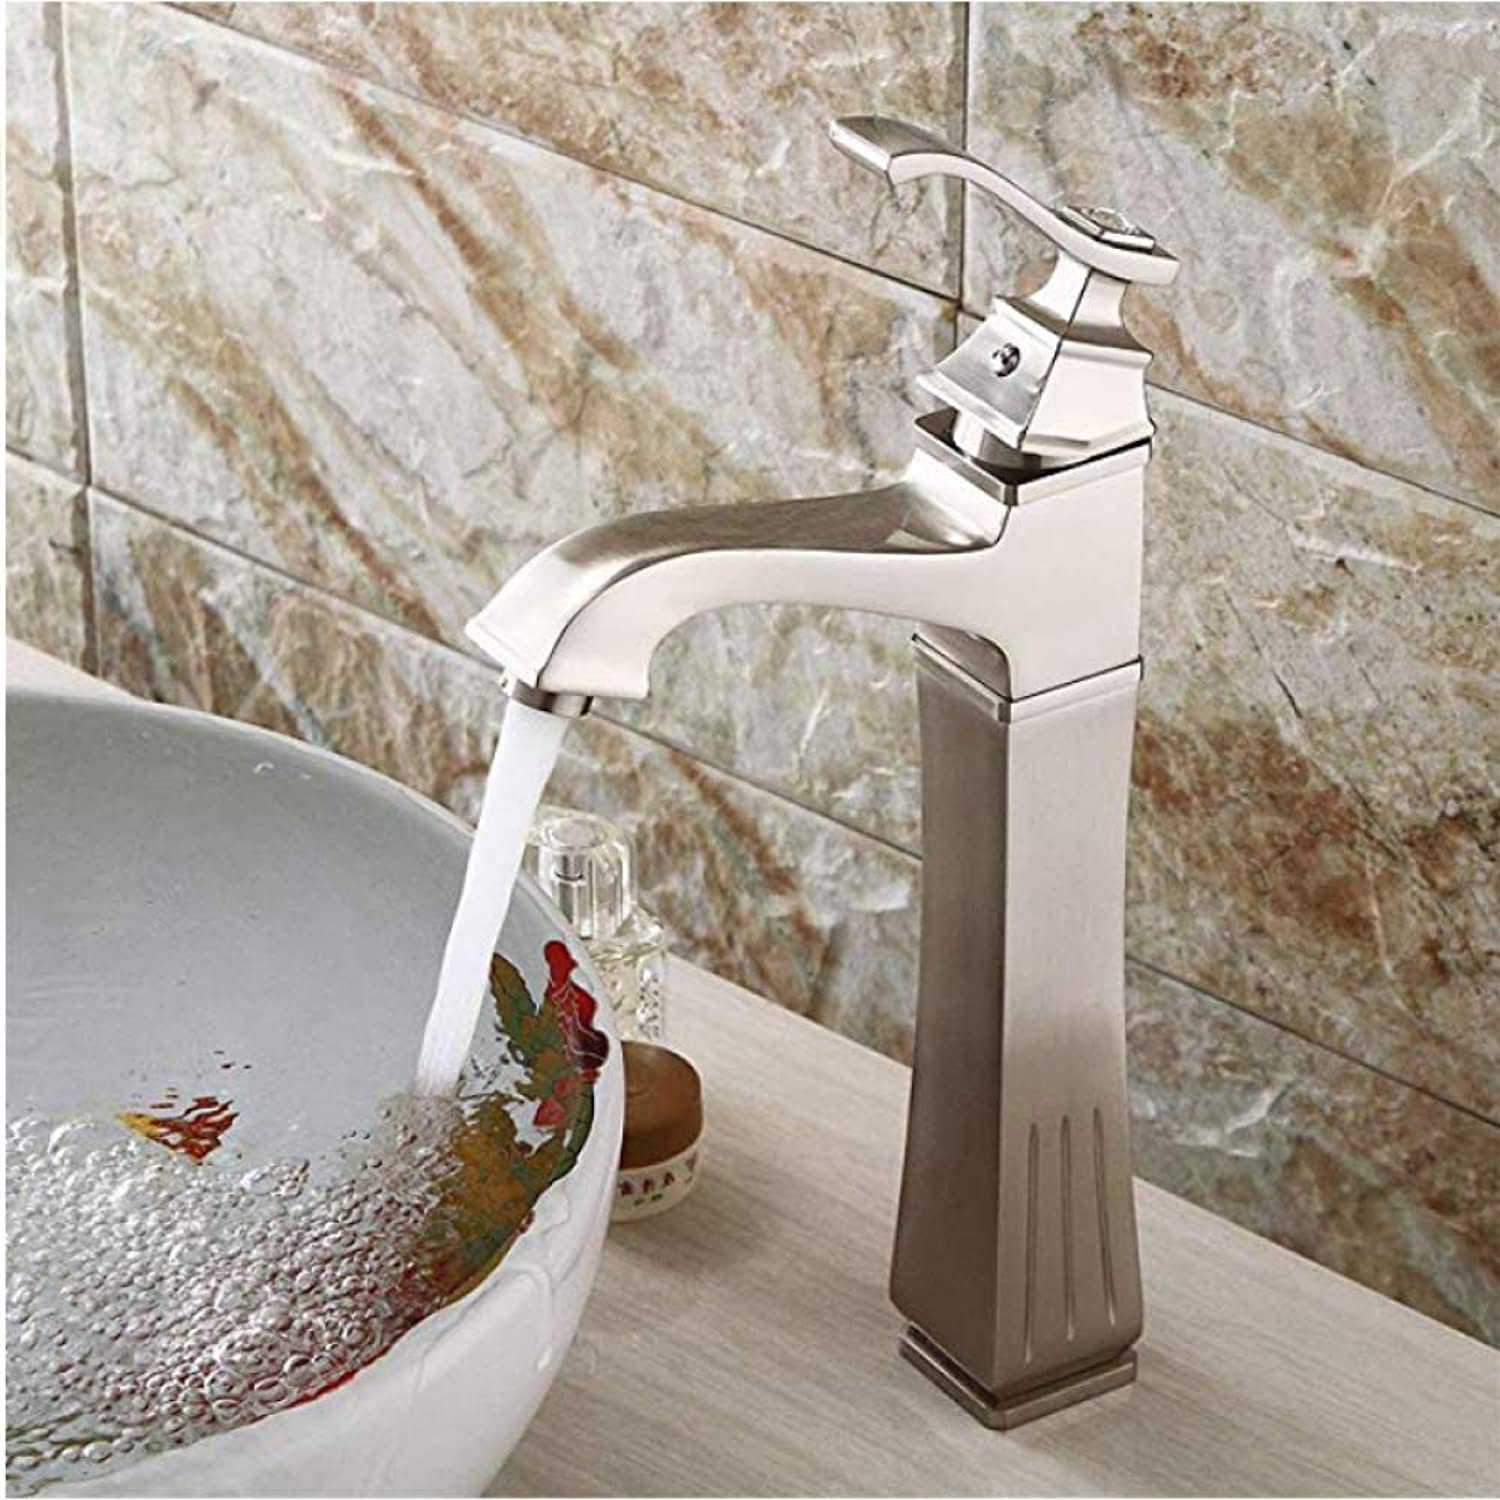 Honcx Faucet Taps Modern Bathroom Brushed Basin Faucet Bathroom Basin Faucet Bathroom Above Counter Basin Square Single Hole Faucet Hot and Cold Water